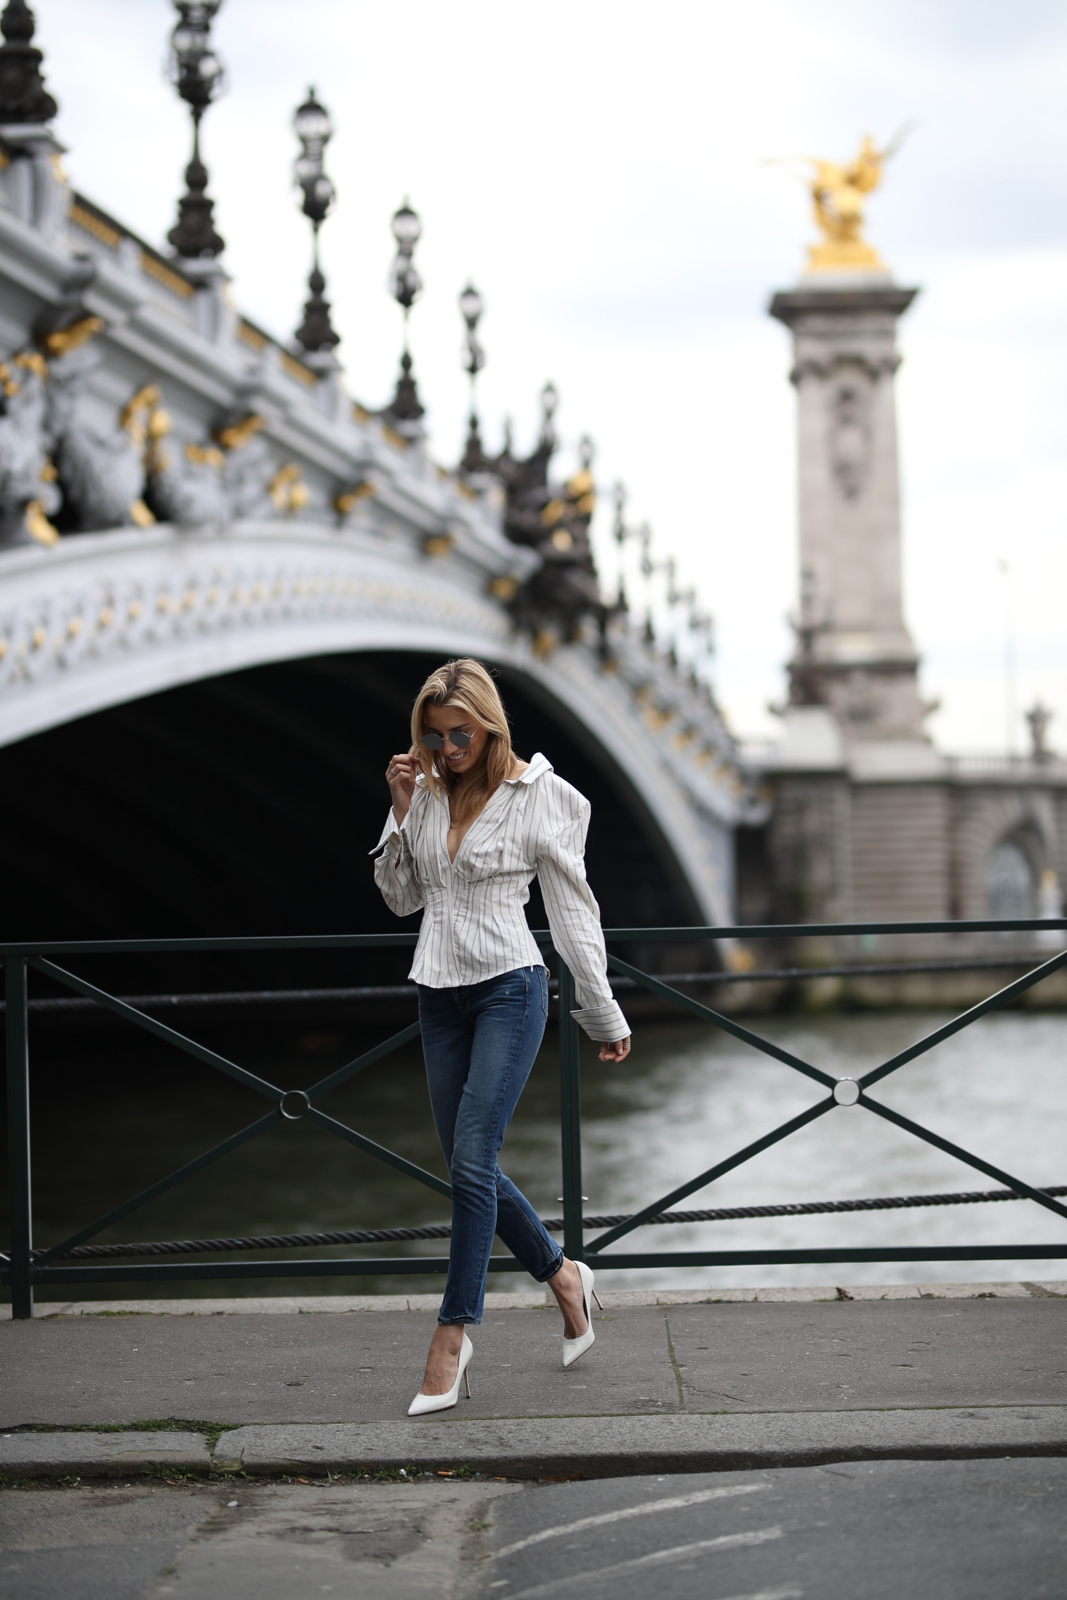 Alexander III Bridge - Paris, Travel, Jacquemus top, Grlfrnd Denim, White pumps, Paris Fashion Week